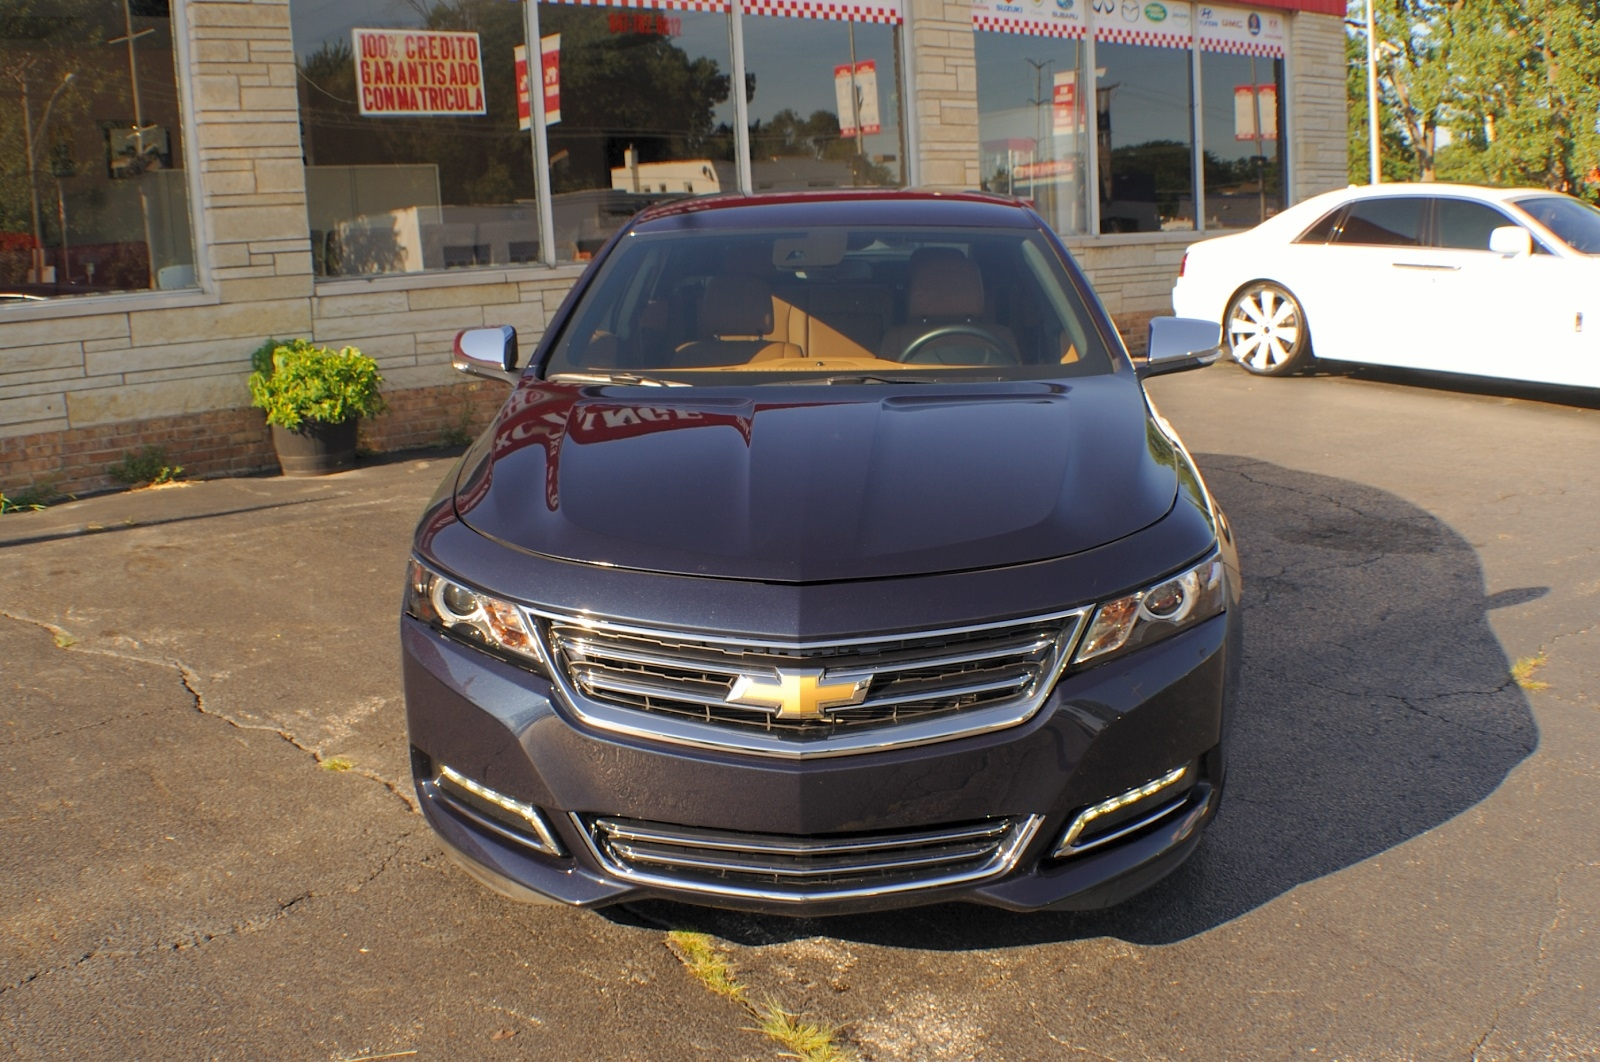 2014 Chevrolet Chevy Impala LTZ Blue Sedan Used Car Sale Gurnee Kenosha Mchenry Chicago Illinois